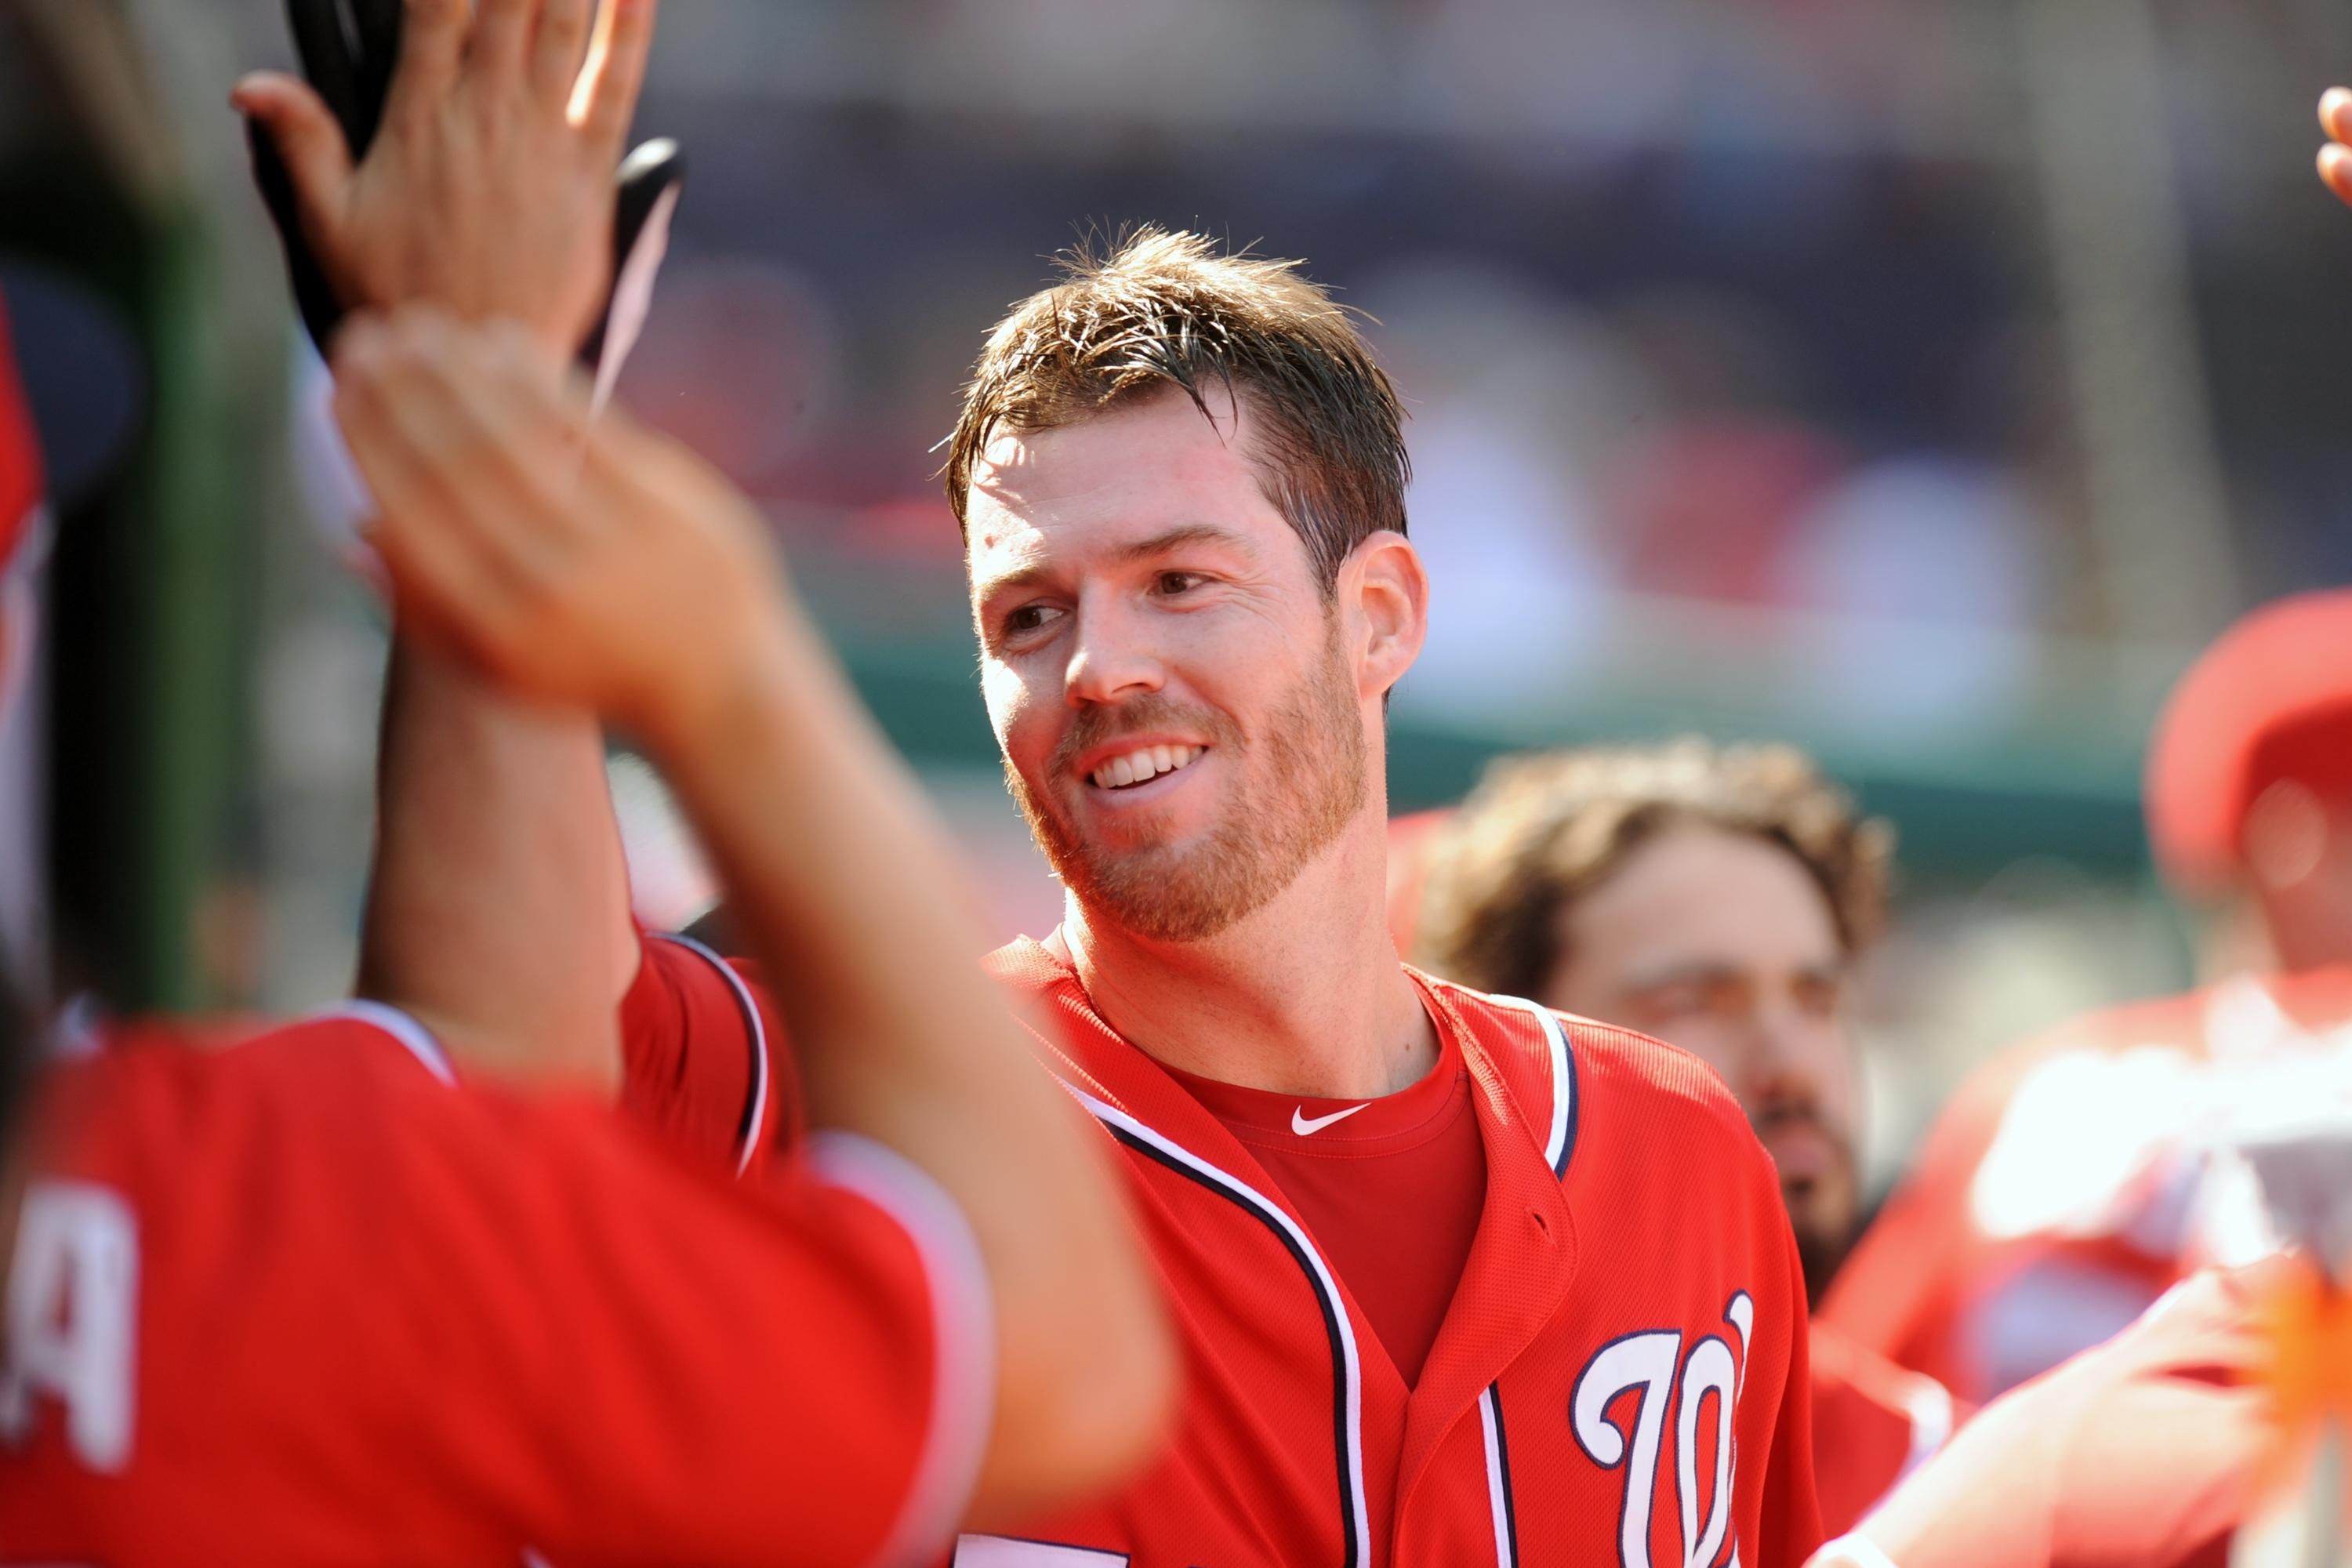 Doug Fister bought everybody free Starbucks for Christmas